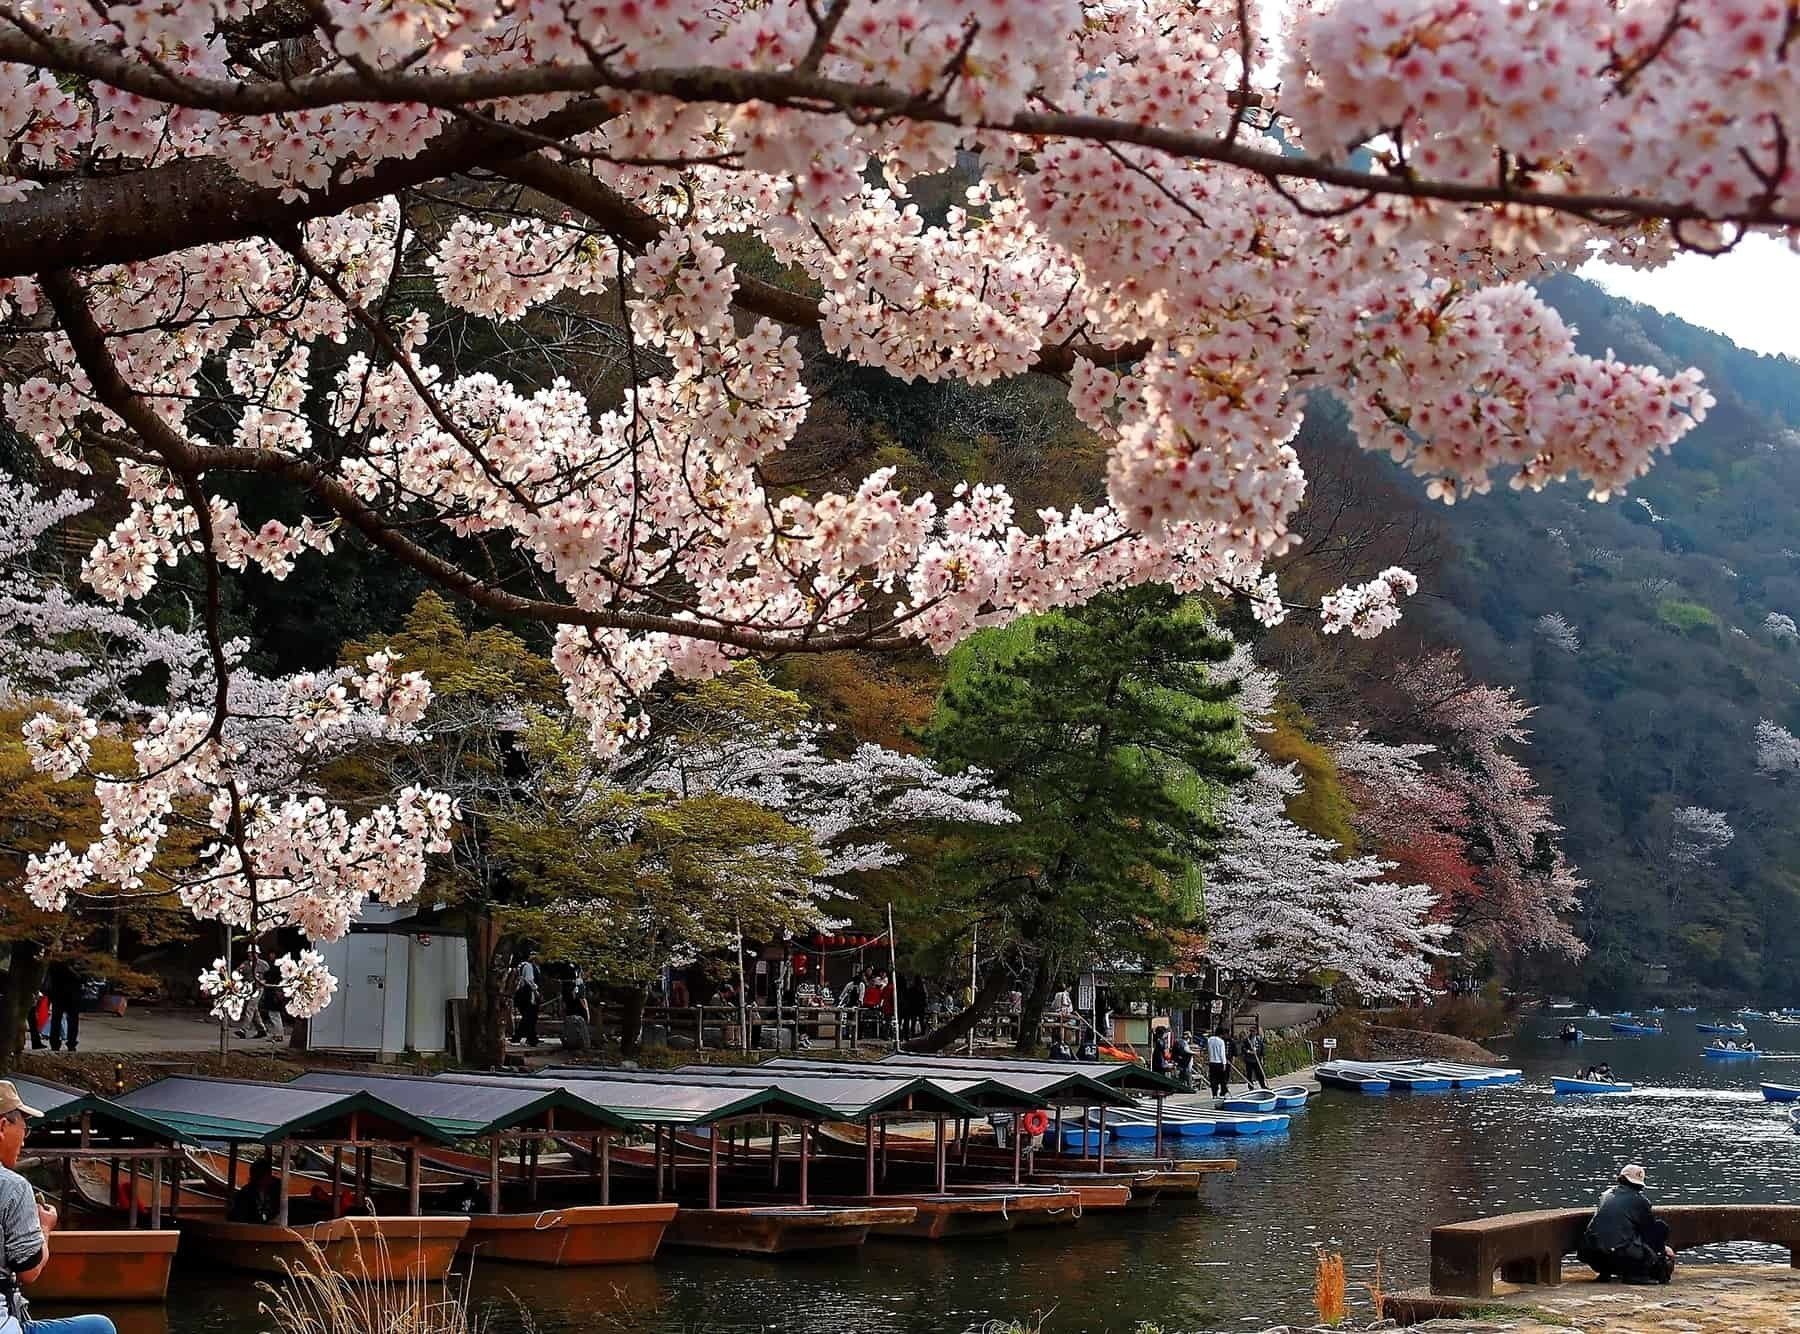 Close-up view of Sakura flowers cherry blossoms by Katsura River with traditional roofed boats Yakatabune parking by the riverside in Arashiyama, Kyoto, Japan~ Beautiful Japanese scenery in spring